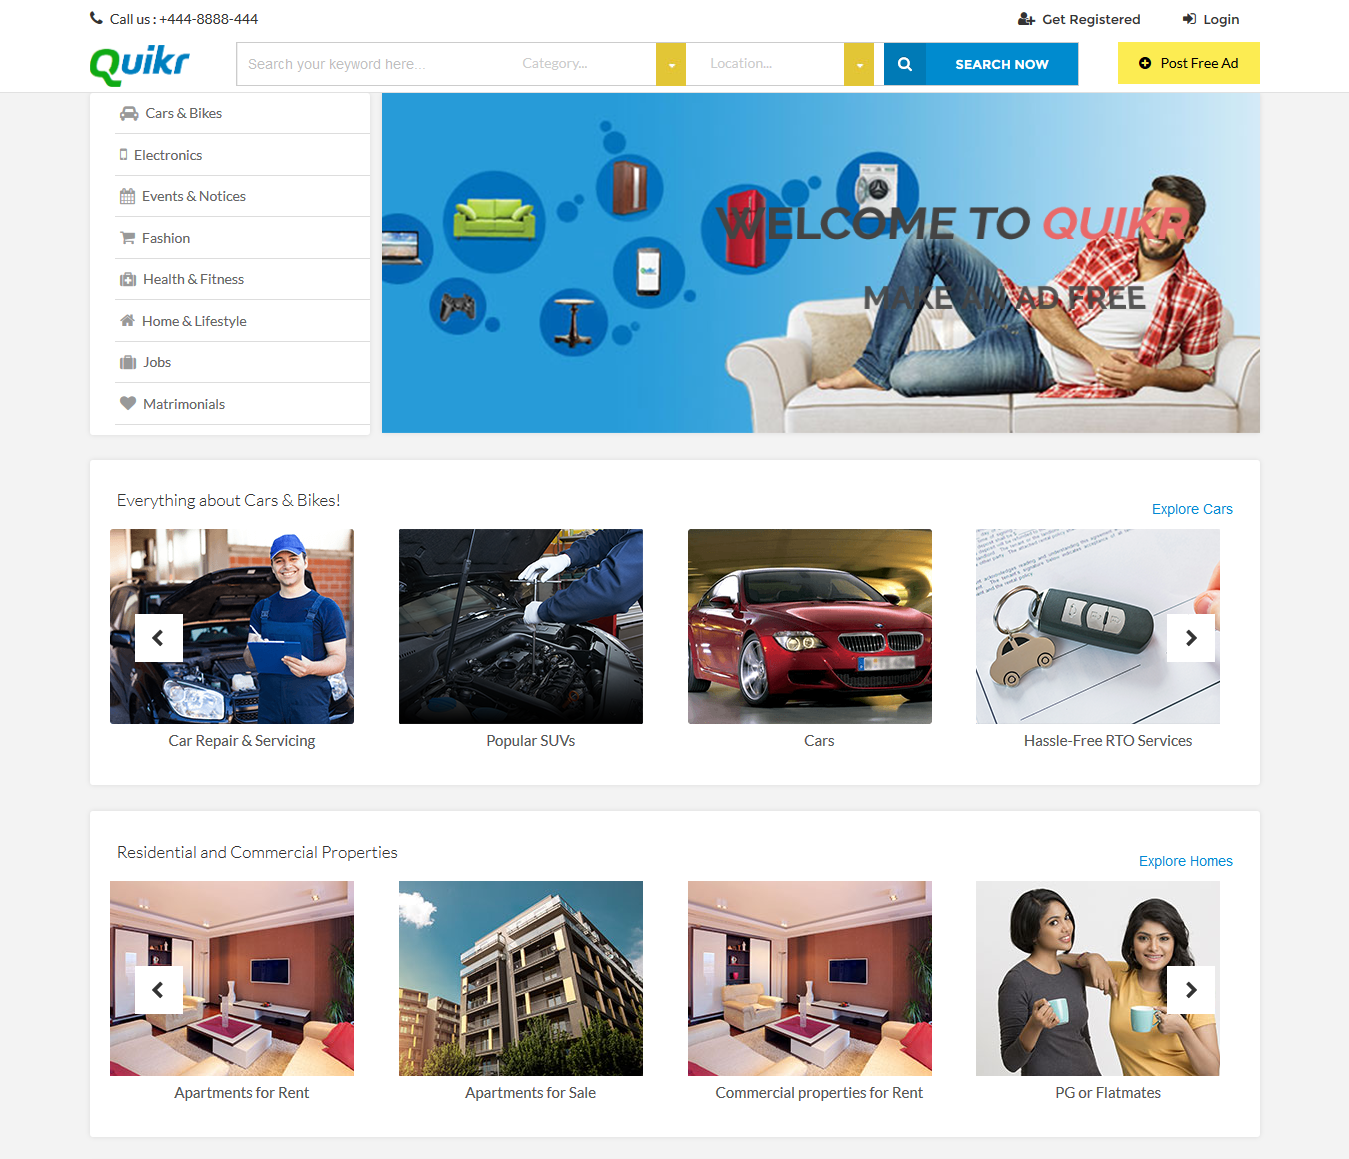 quikr-user-homepage